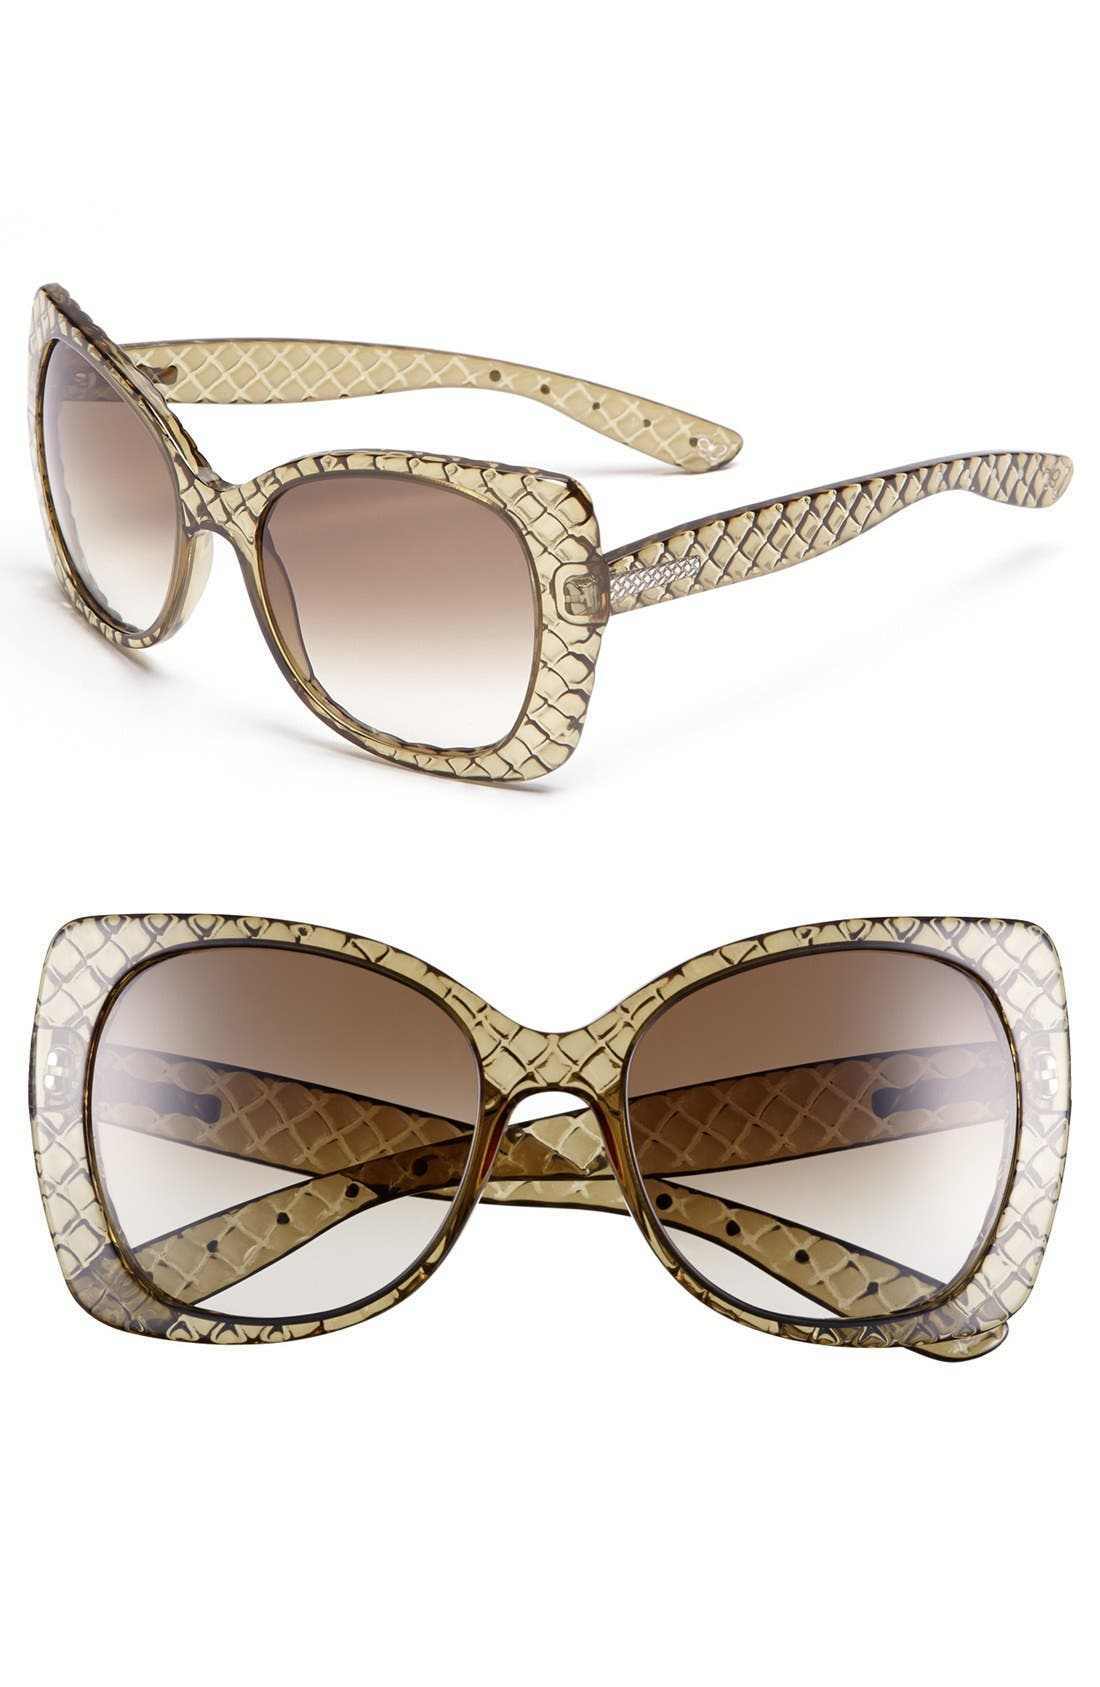 Alternate Image 1 Selected - Bottega Veneta 55mm Oversized Sunglasses